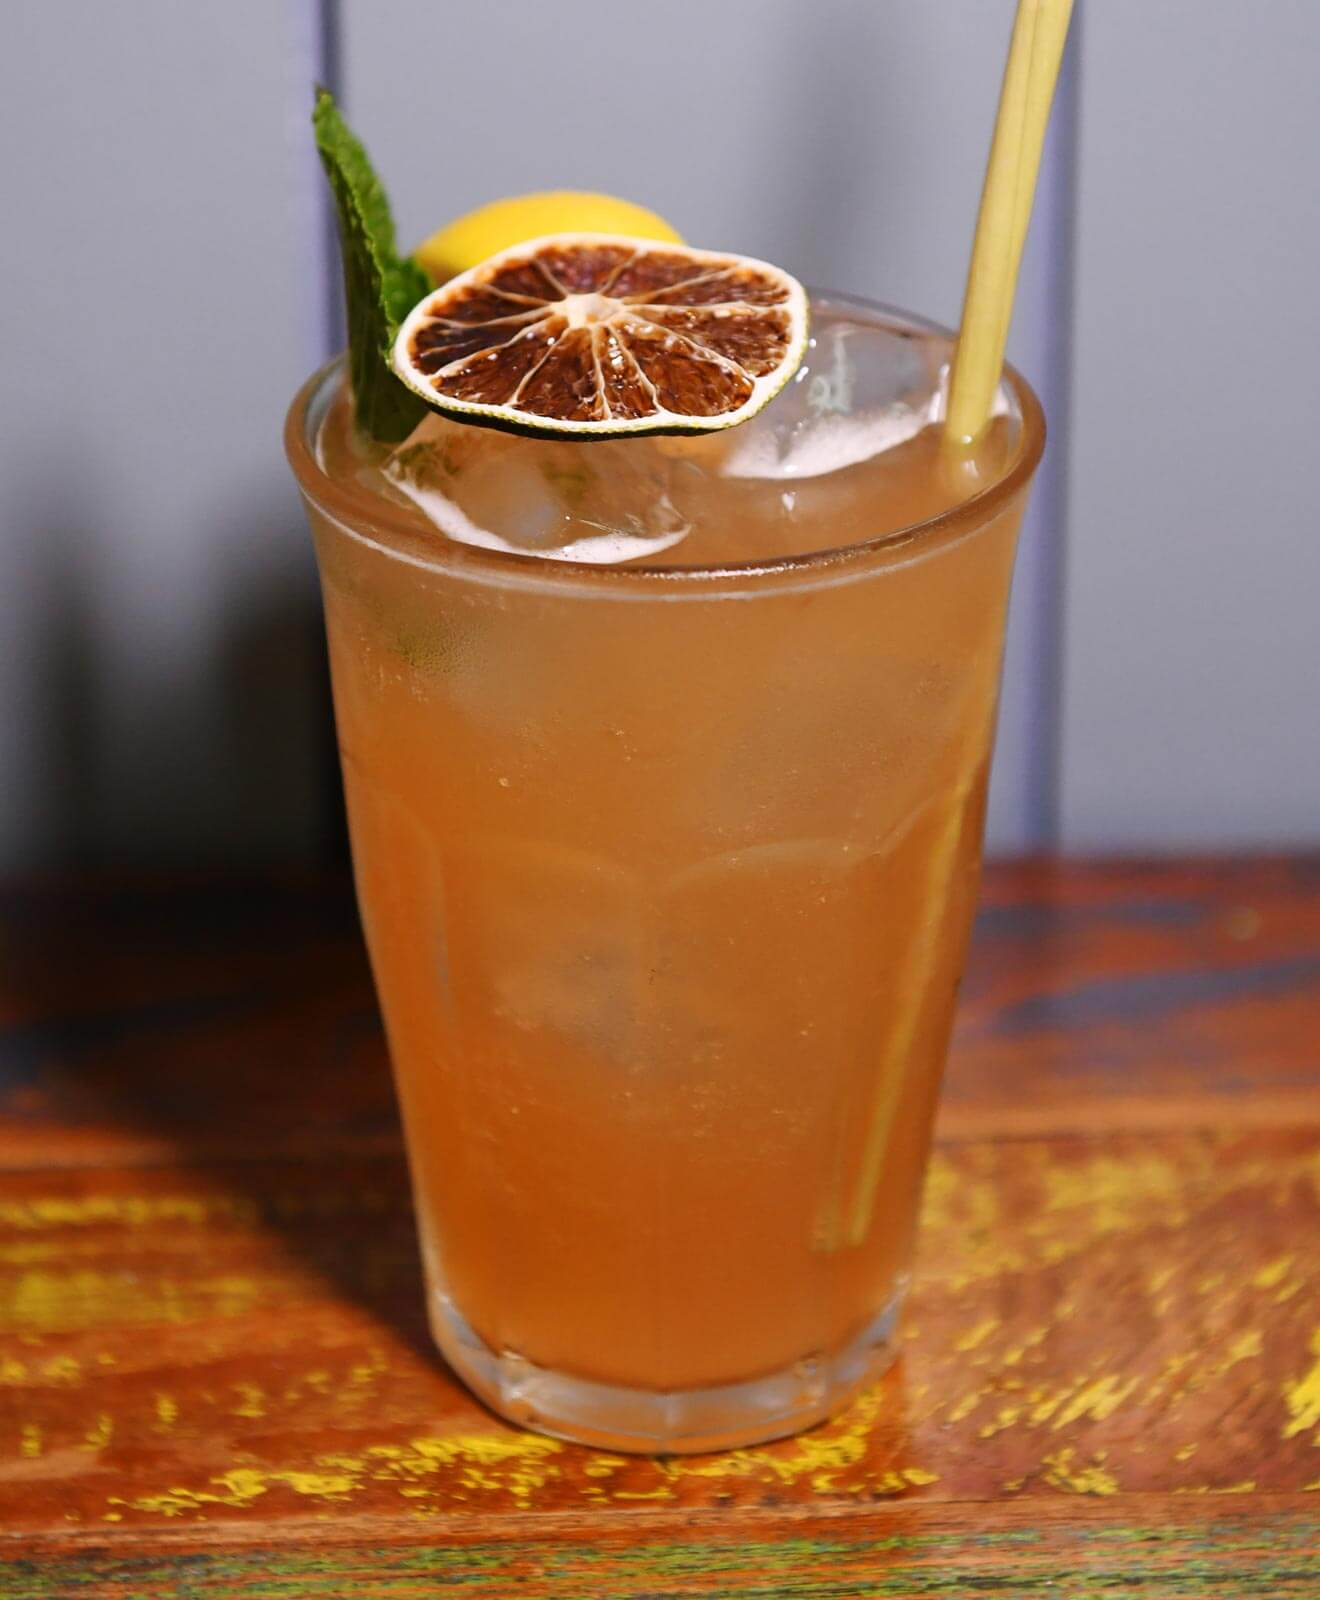 The Brooklyn Admiral cocktail